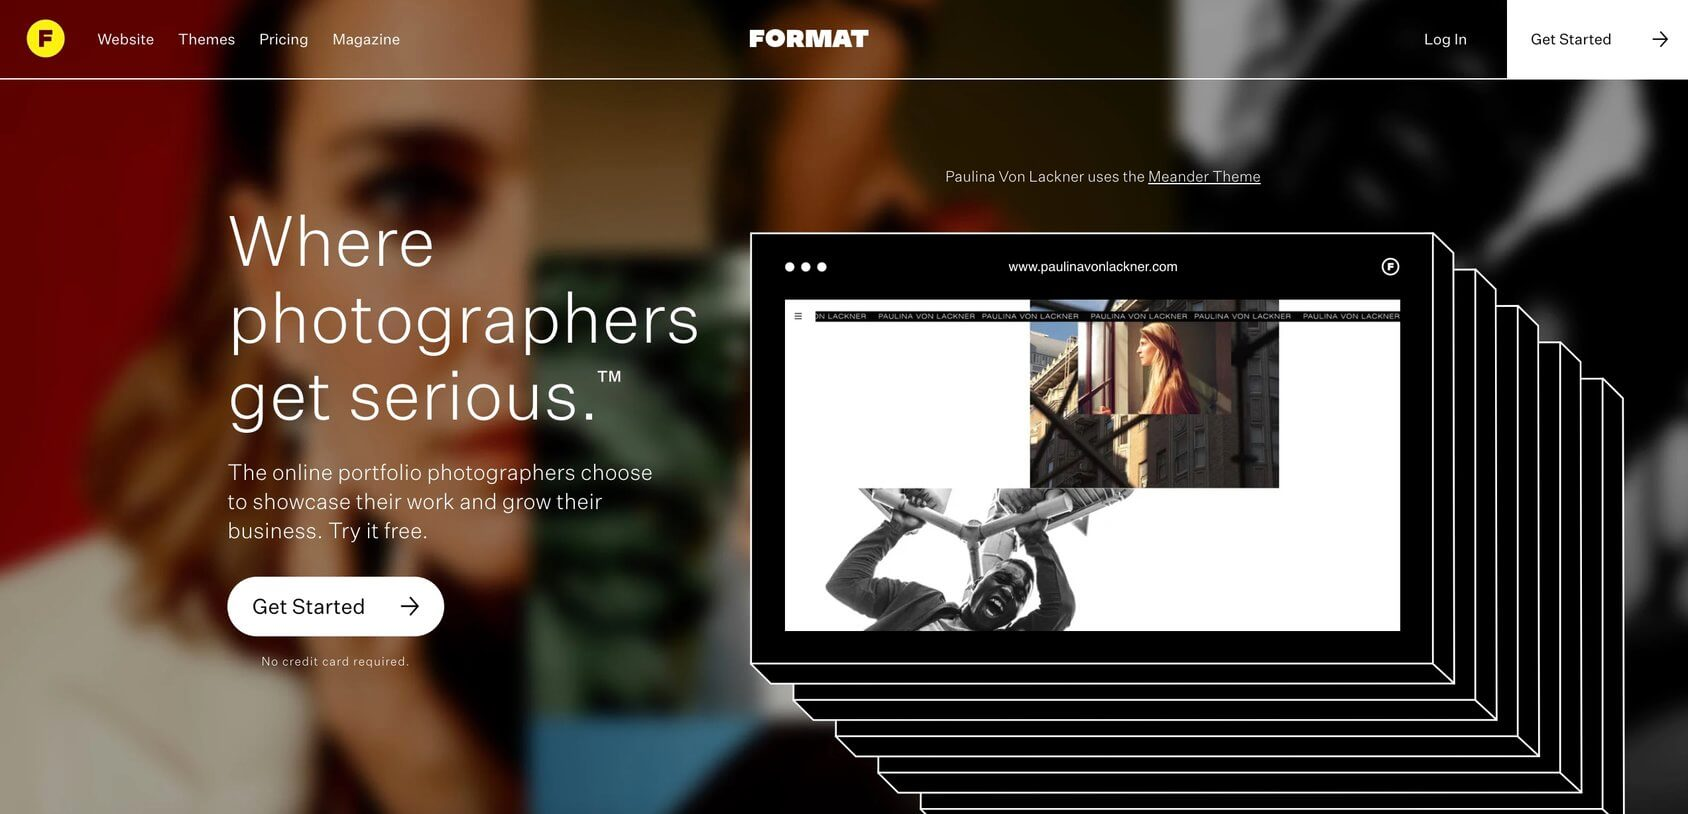 Format homepage